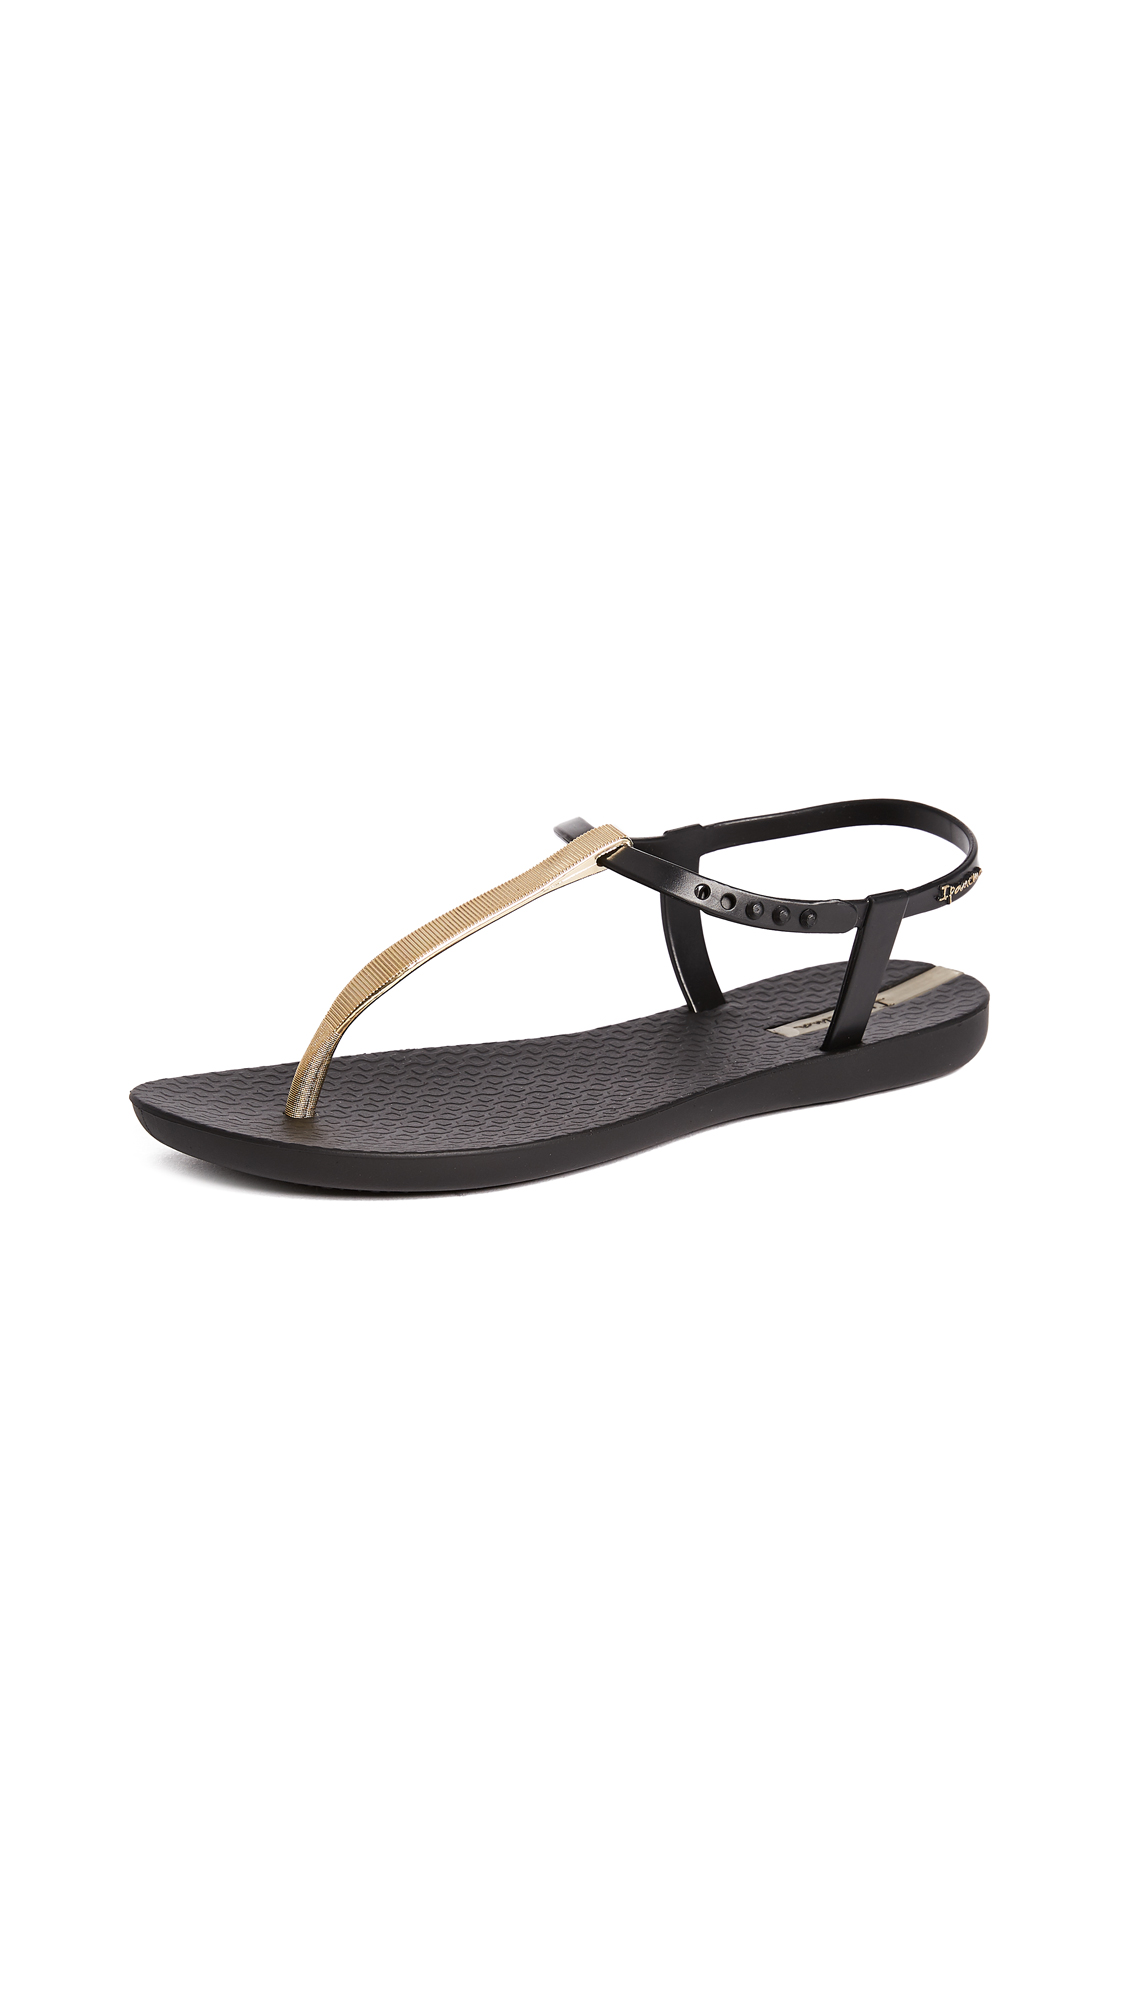 Ipanema Bandeau T-Strap Sandals - Black/Gold